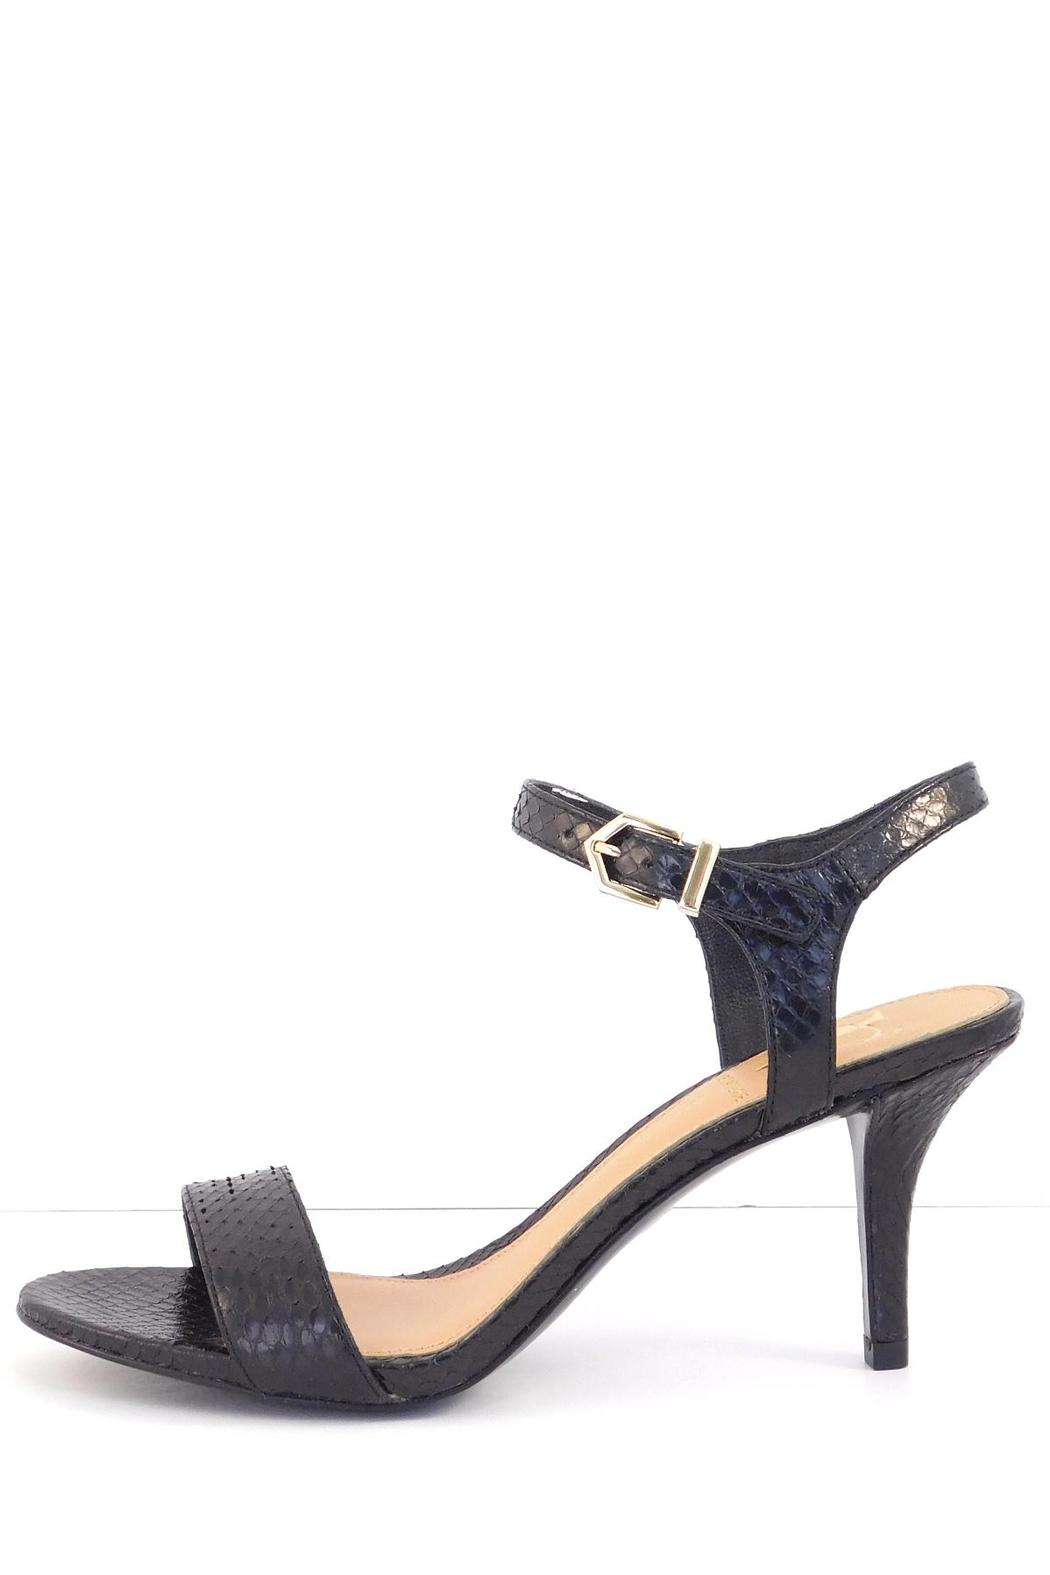 5213a6dc32874e ... Vince Camuto Signature Dress Sandal - Front Cropped Image new concept  76566 76aa4 ...